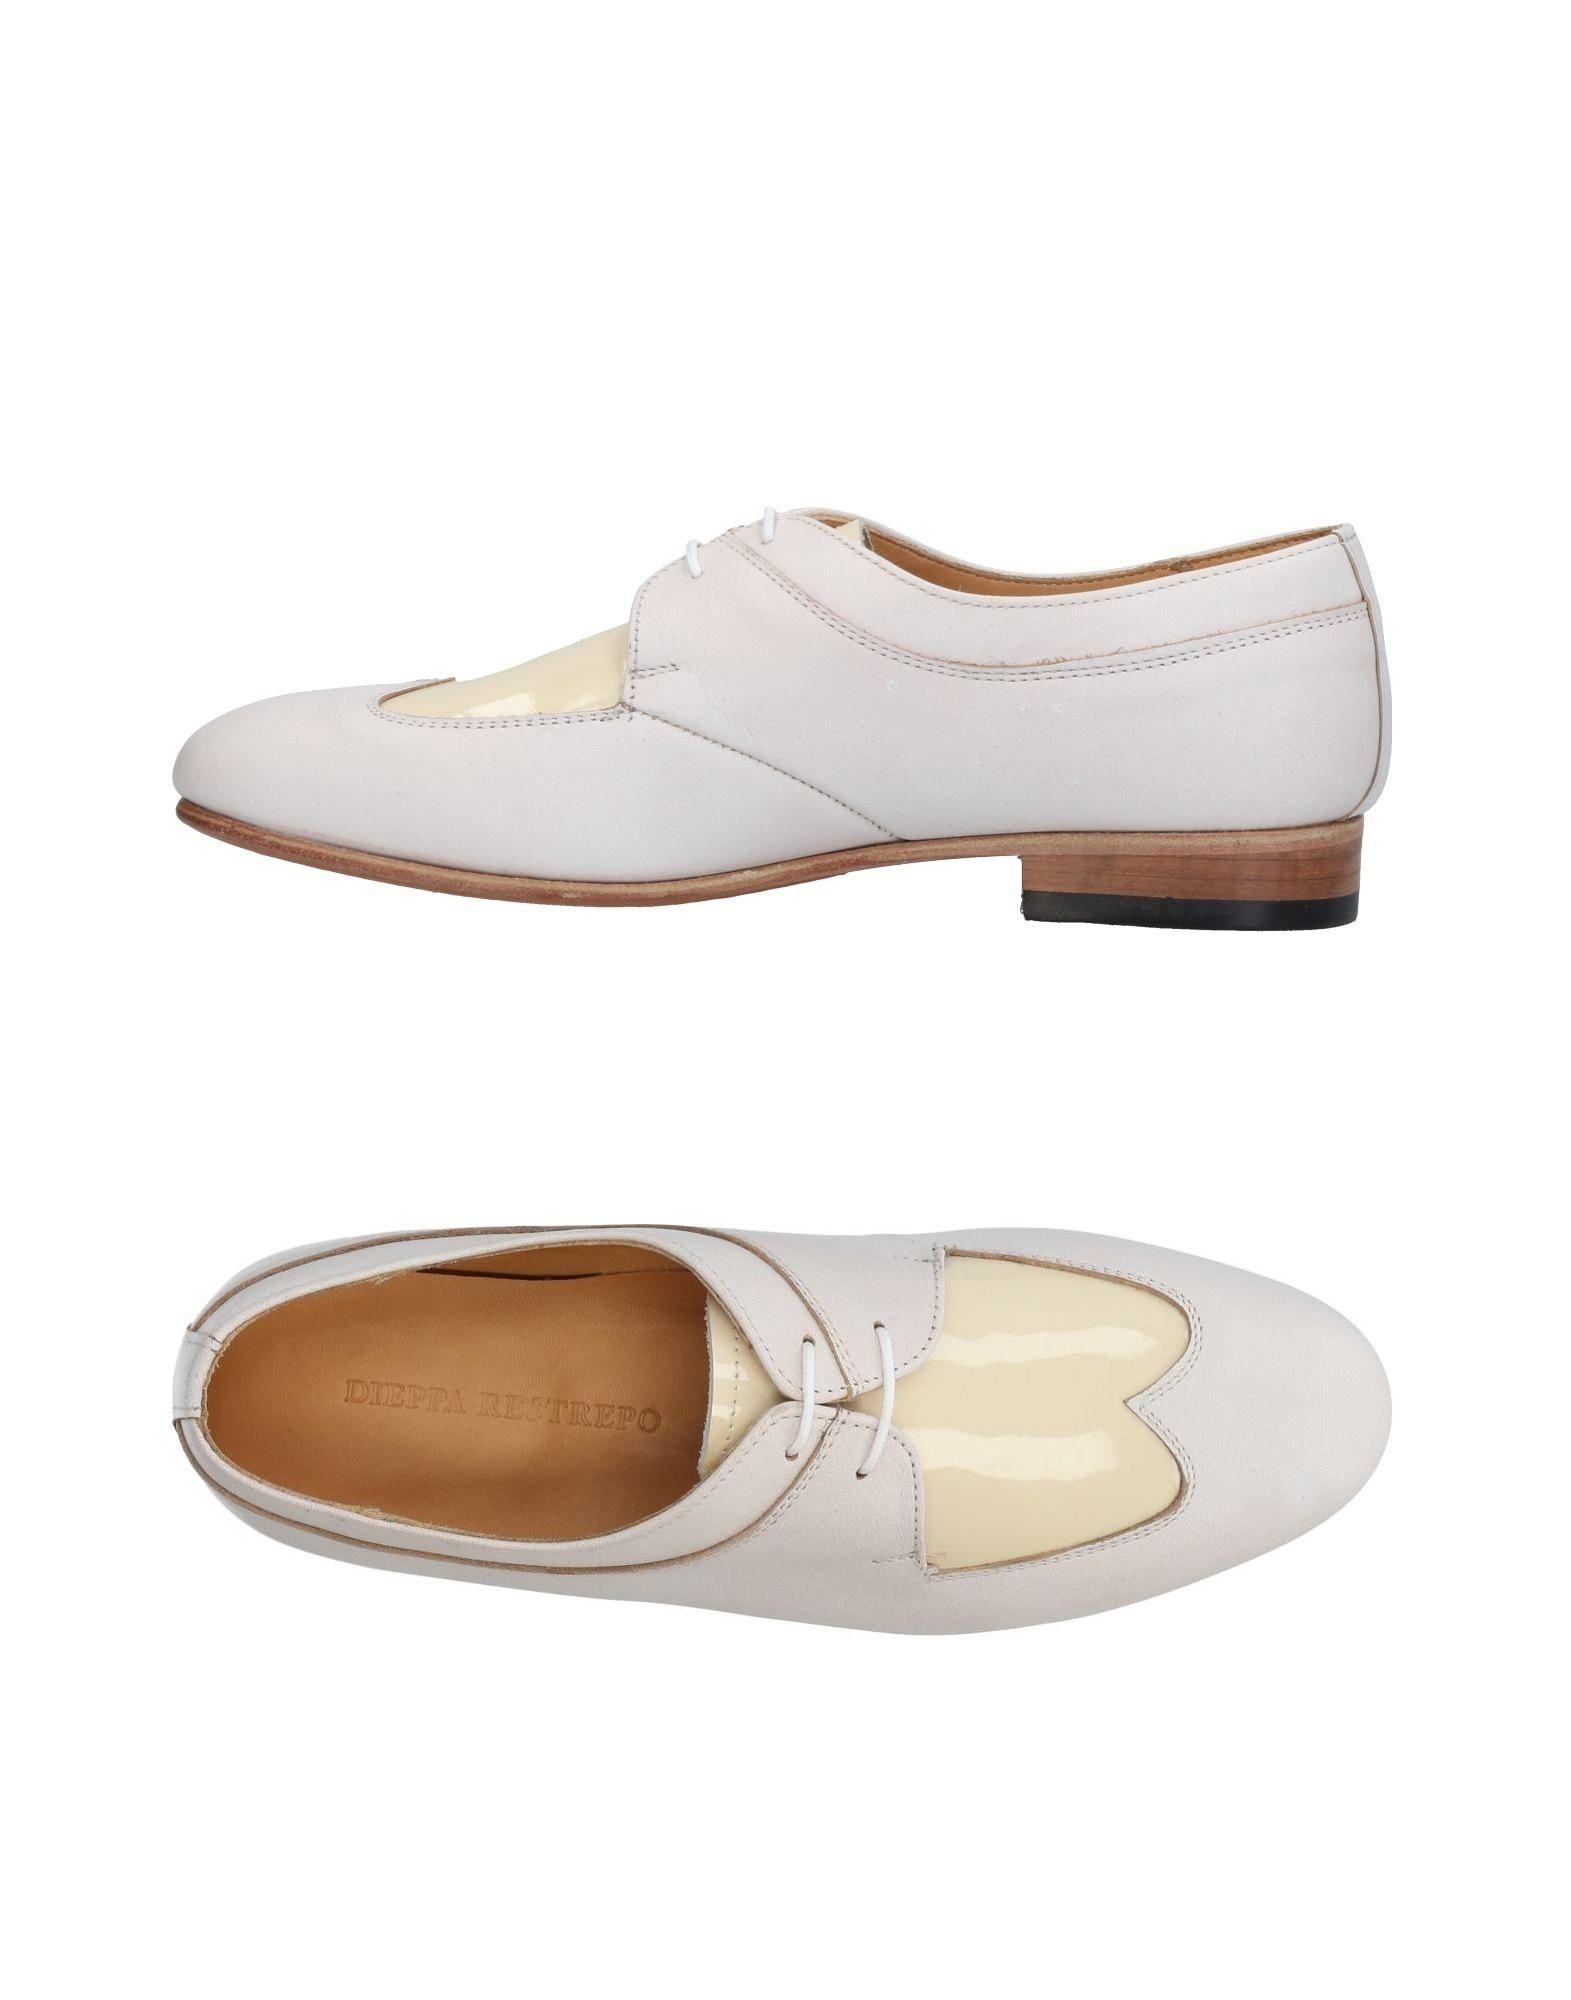 Dieppa Restrepo Lace-up Shoes In Ivory